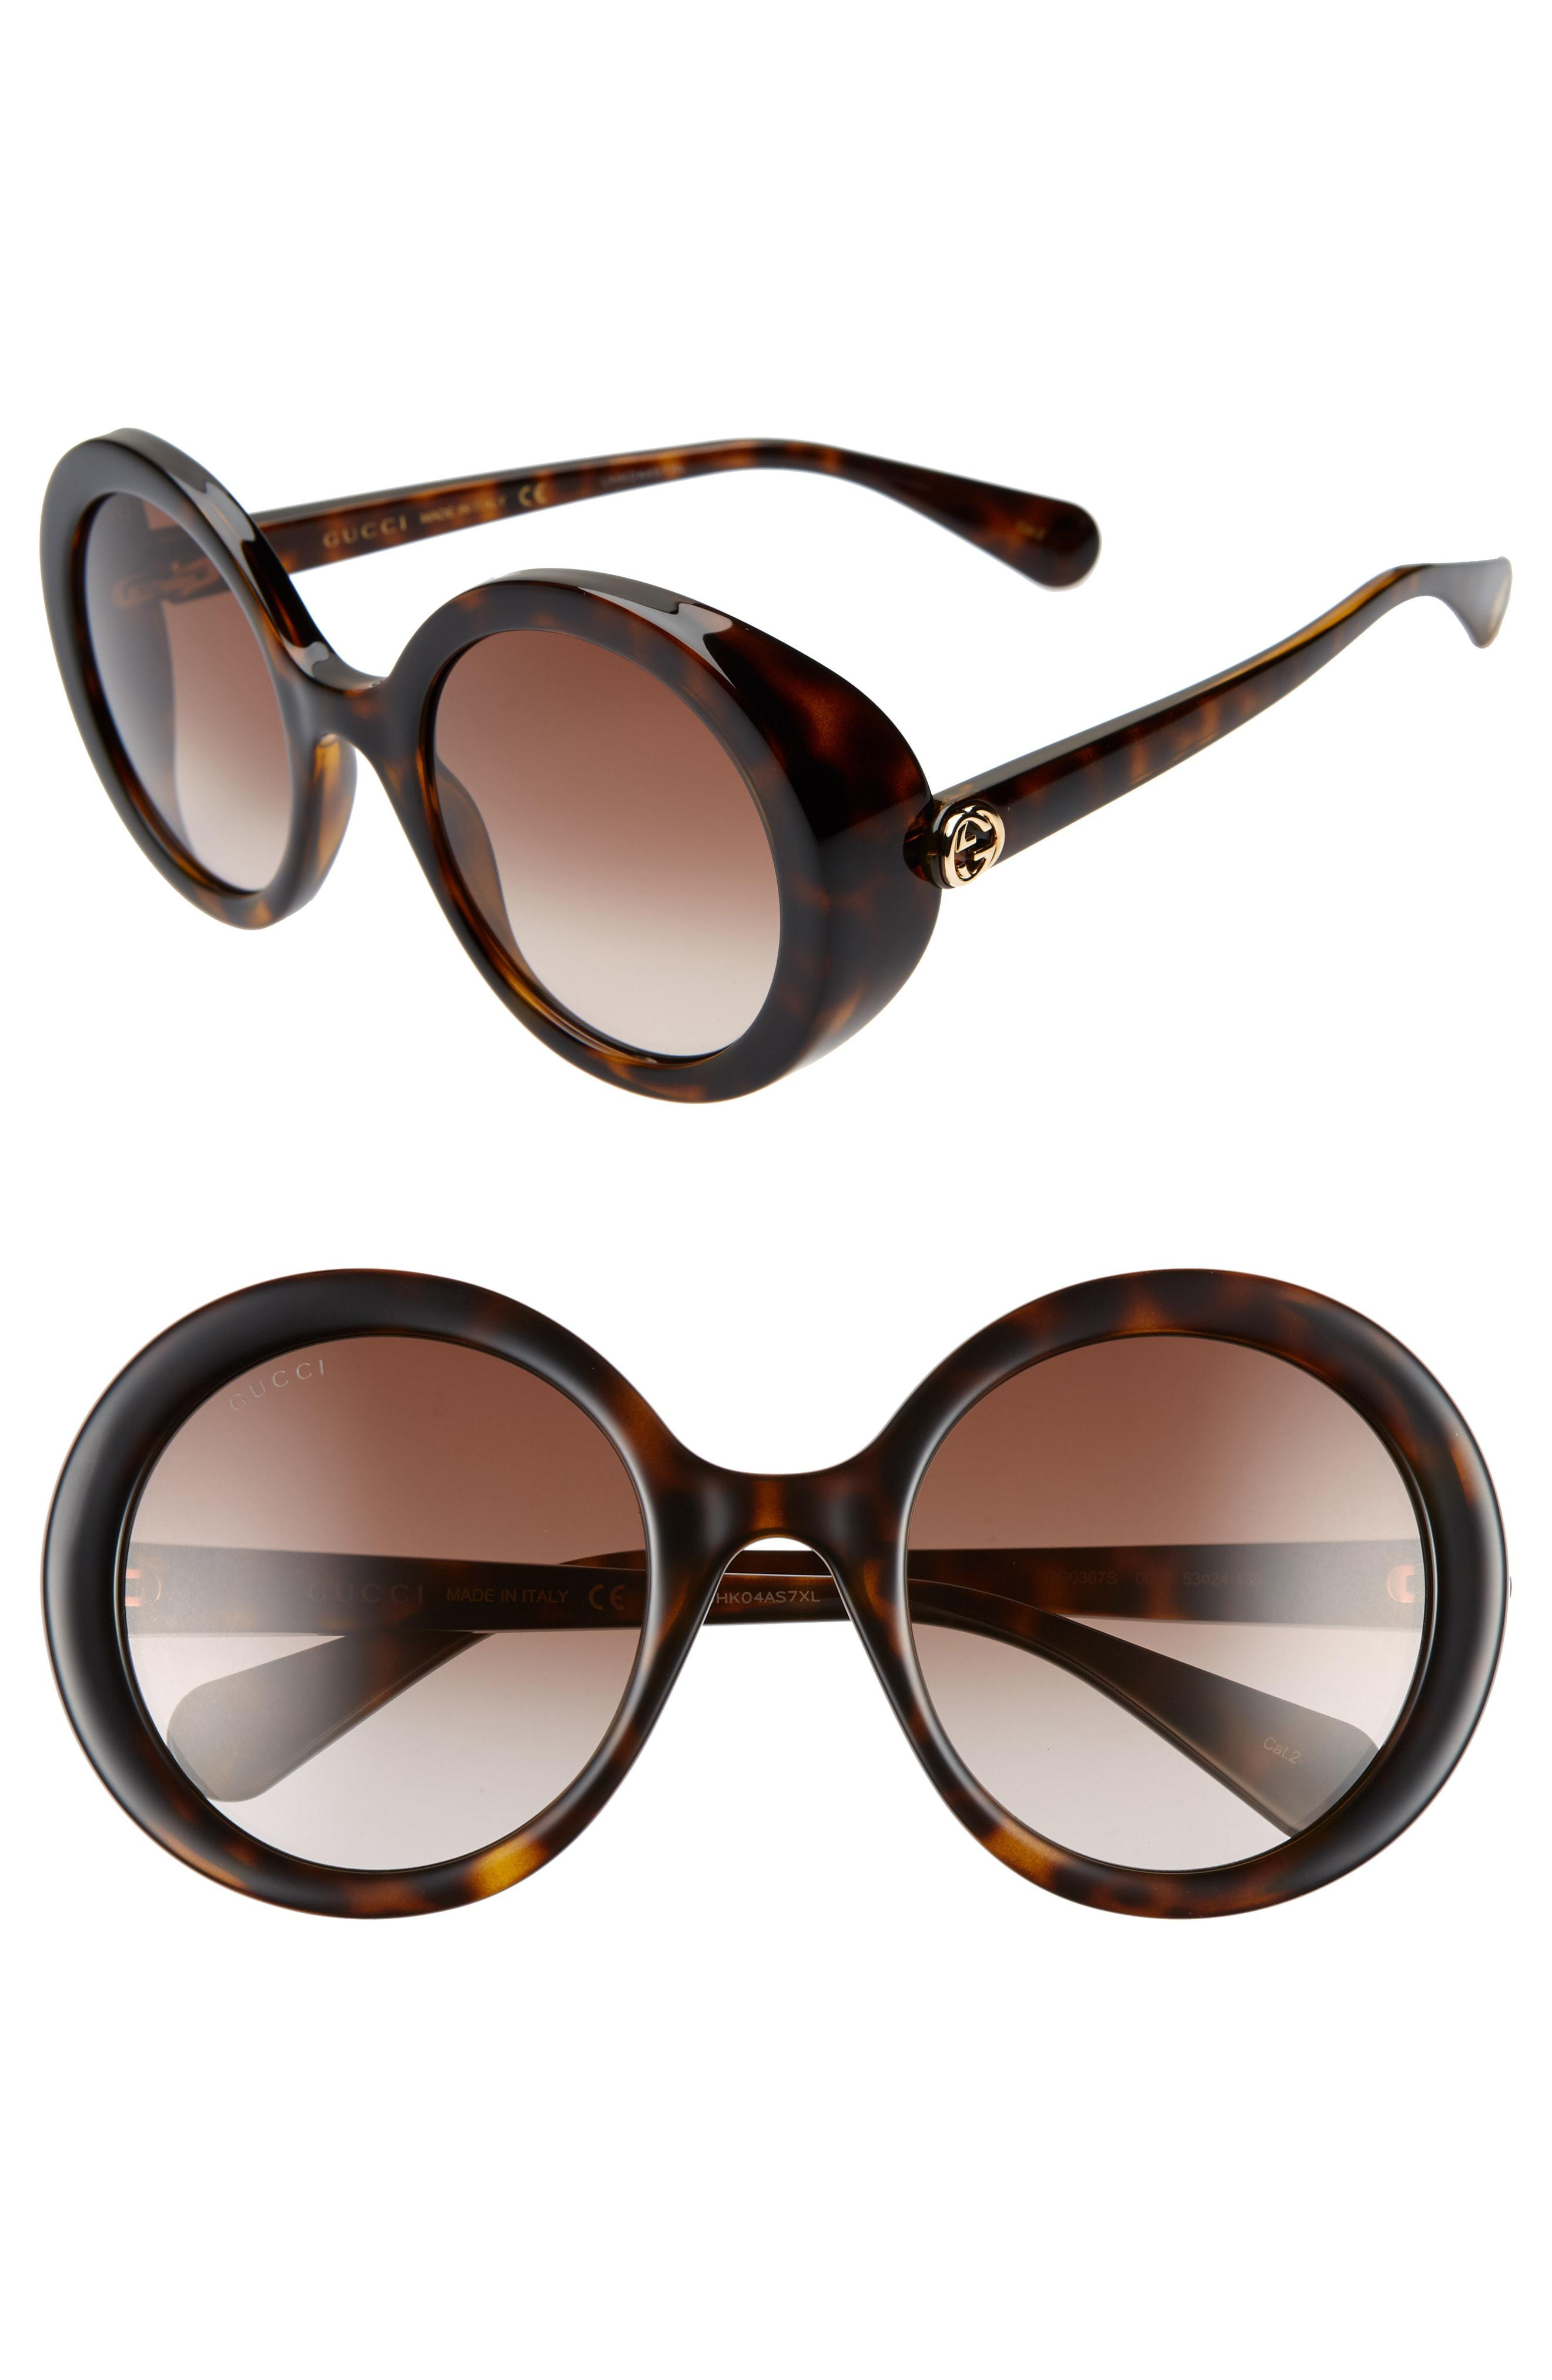 5fdfb58e1af5b Gucci - 53mm Round Sunglasses - Dark Havana  Brown Gradient - Lyst. View  fullscreen